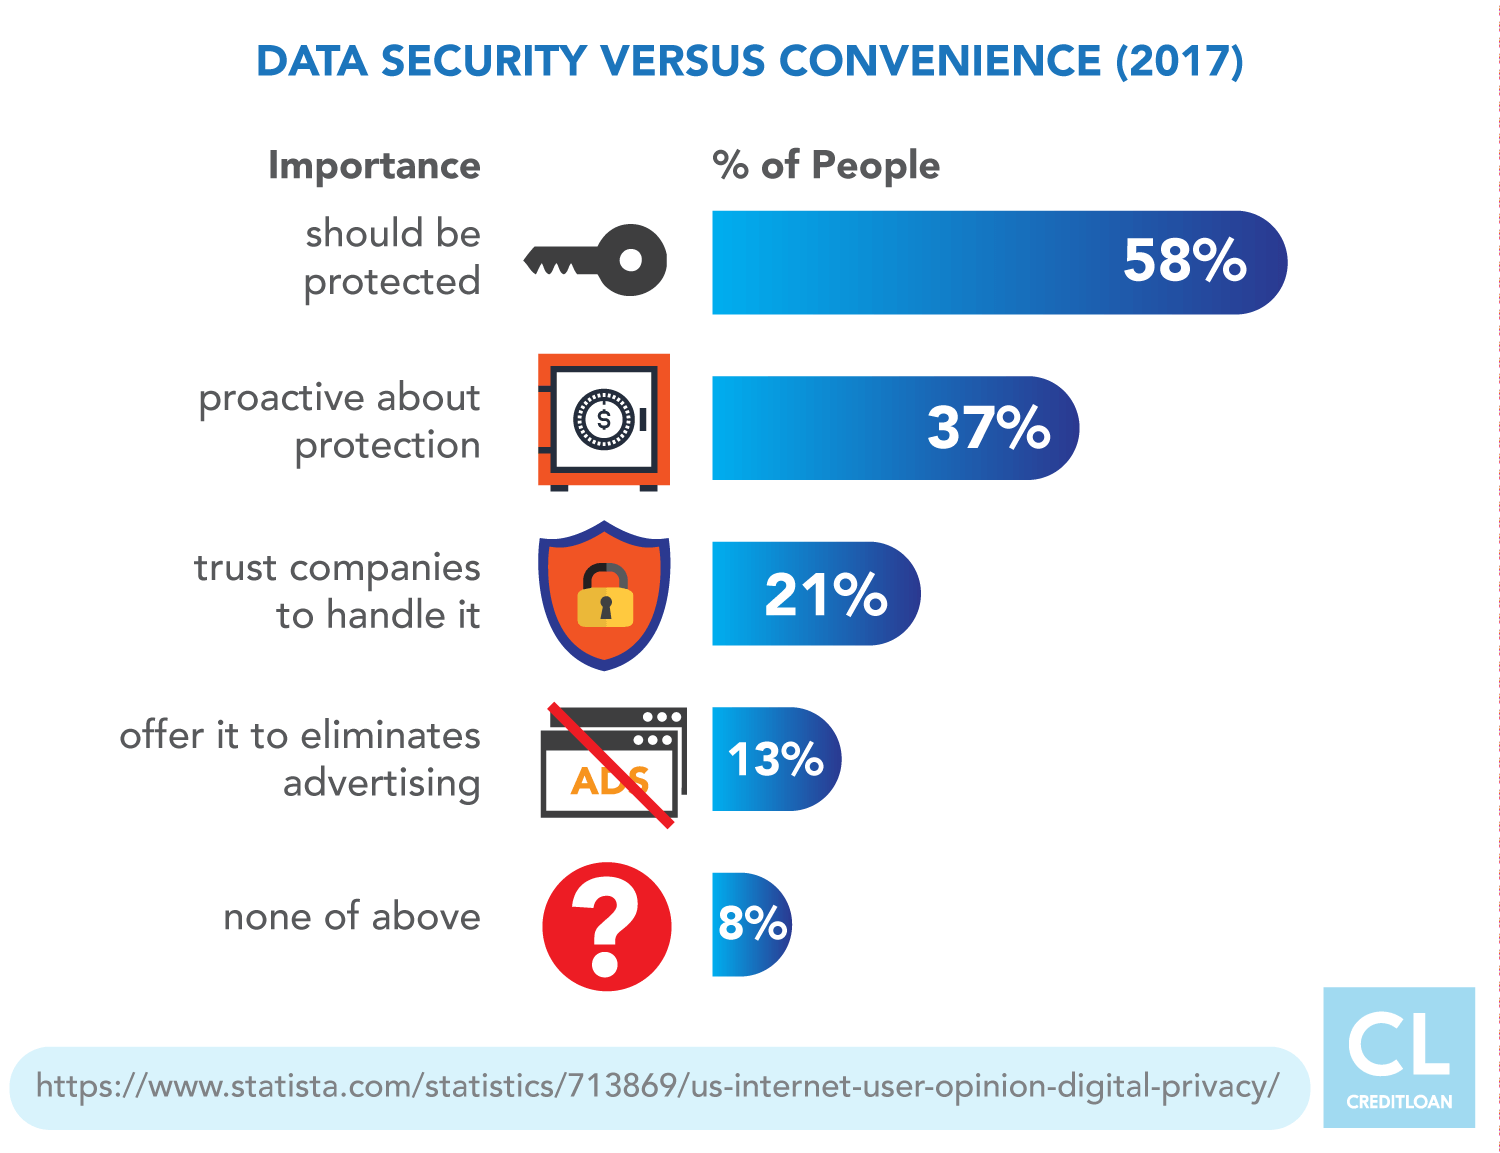 Data Secuirity versus convenience statistics 2017